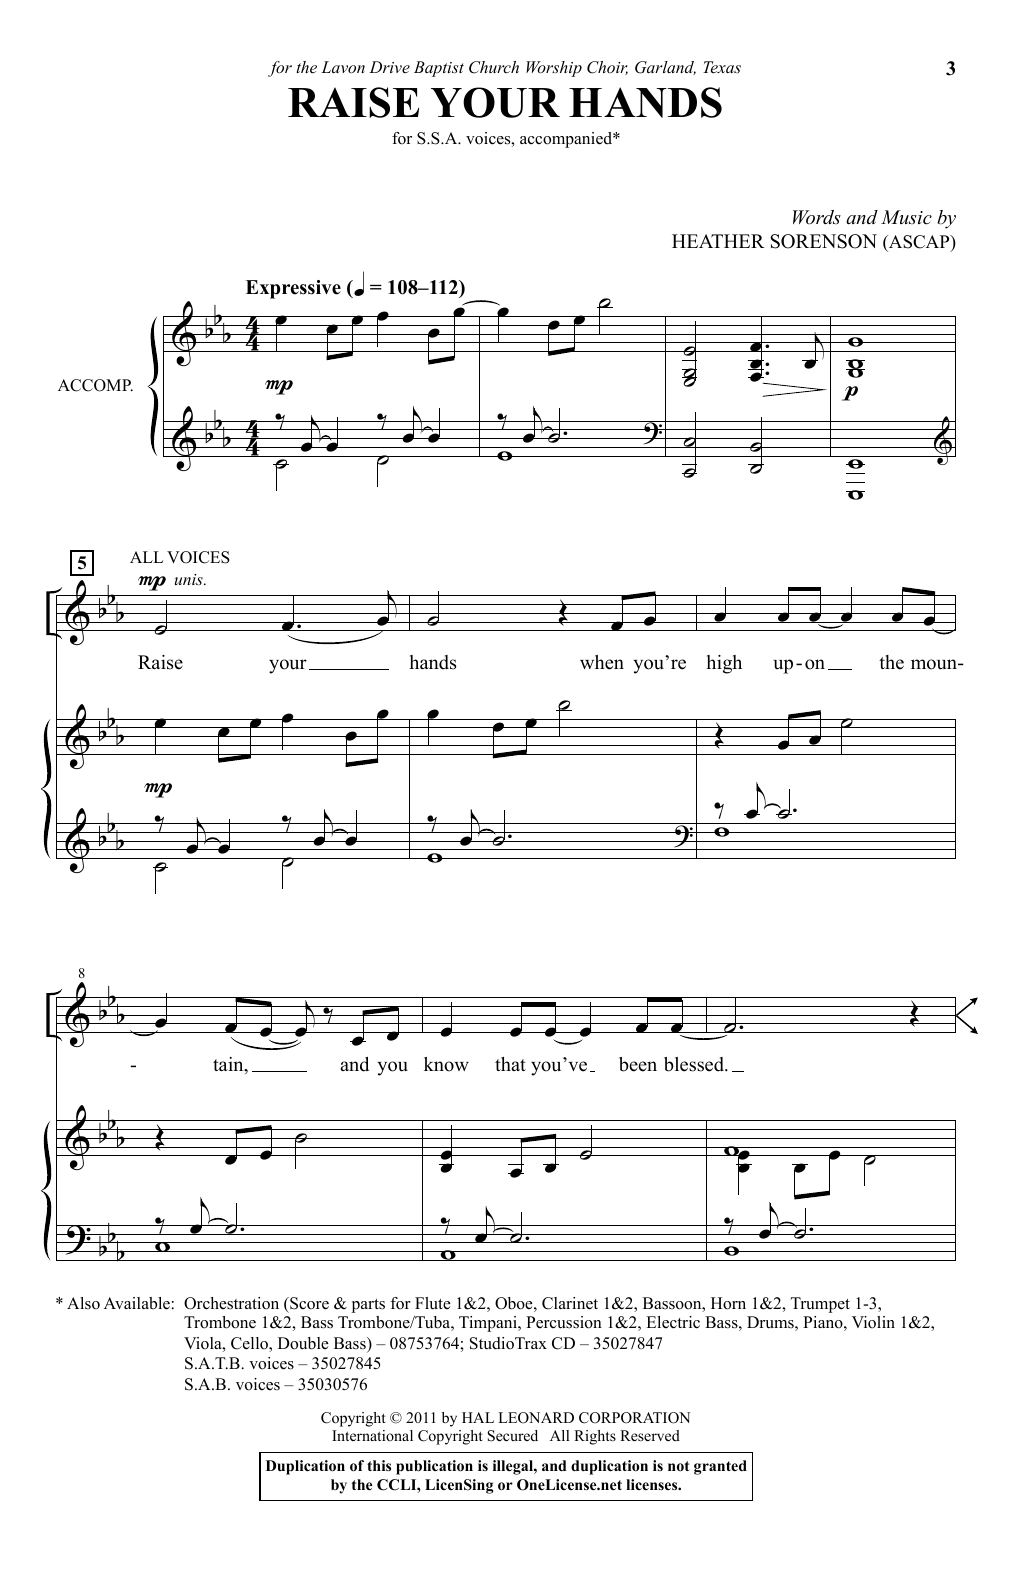 Download Heather Sorenson 'Raise Your Hands' Digital Sheet Music Notes & Chords and start playing in minutes